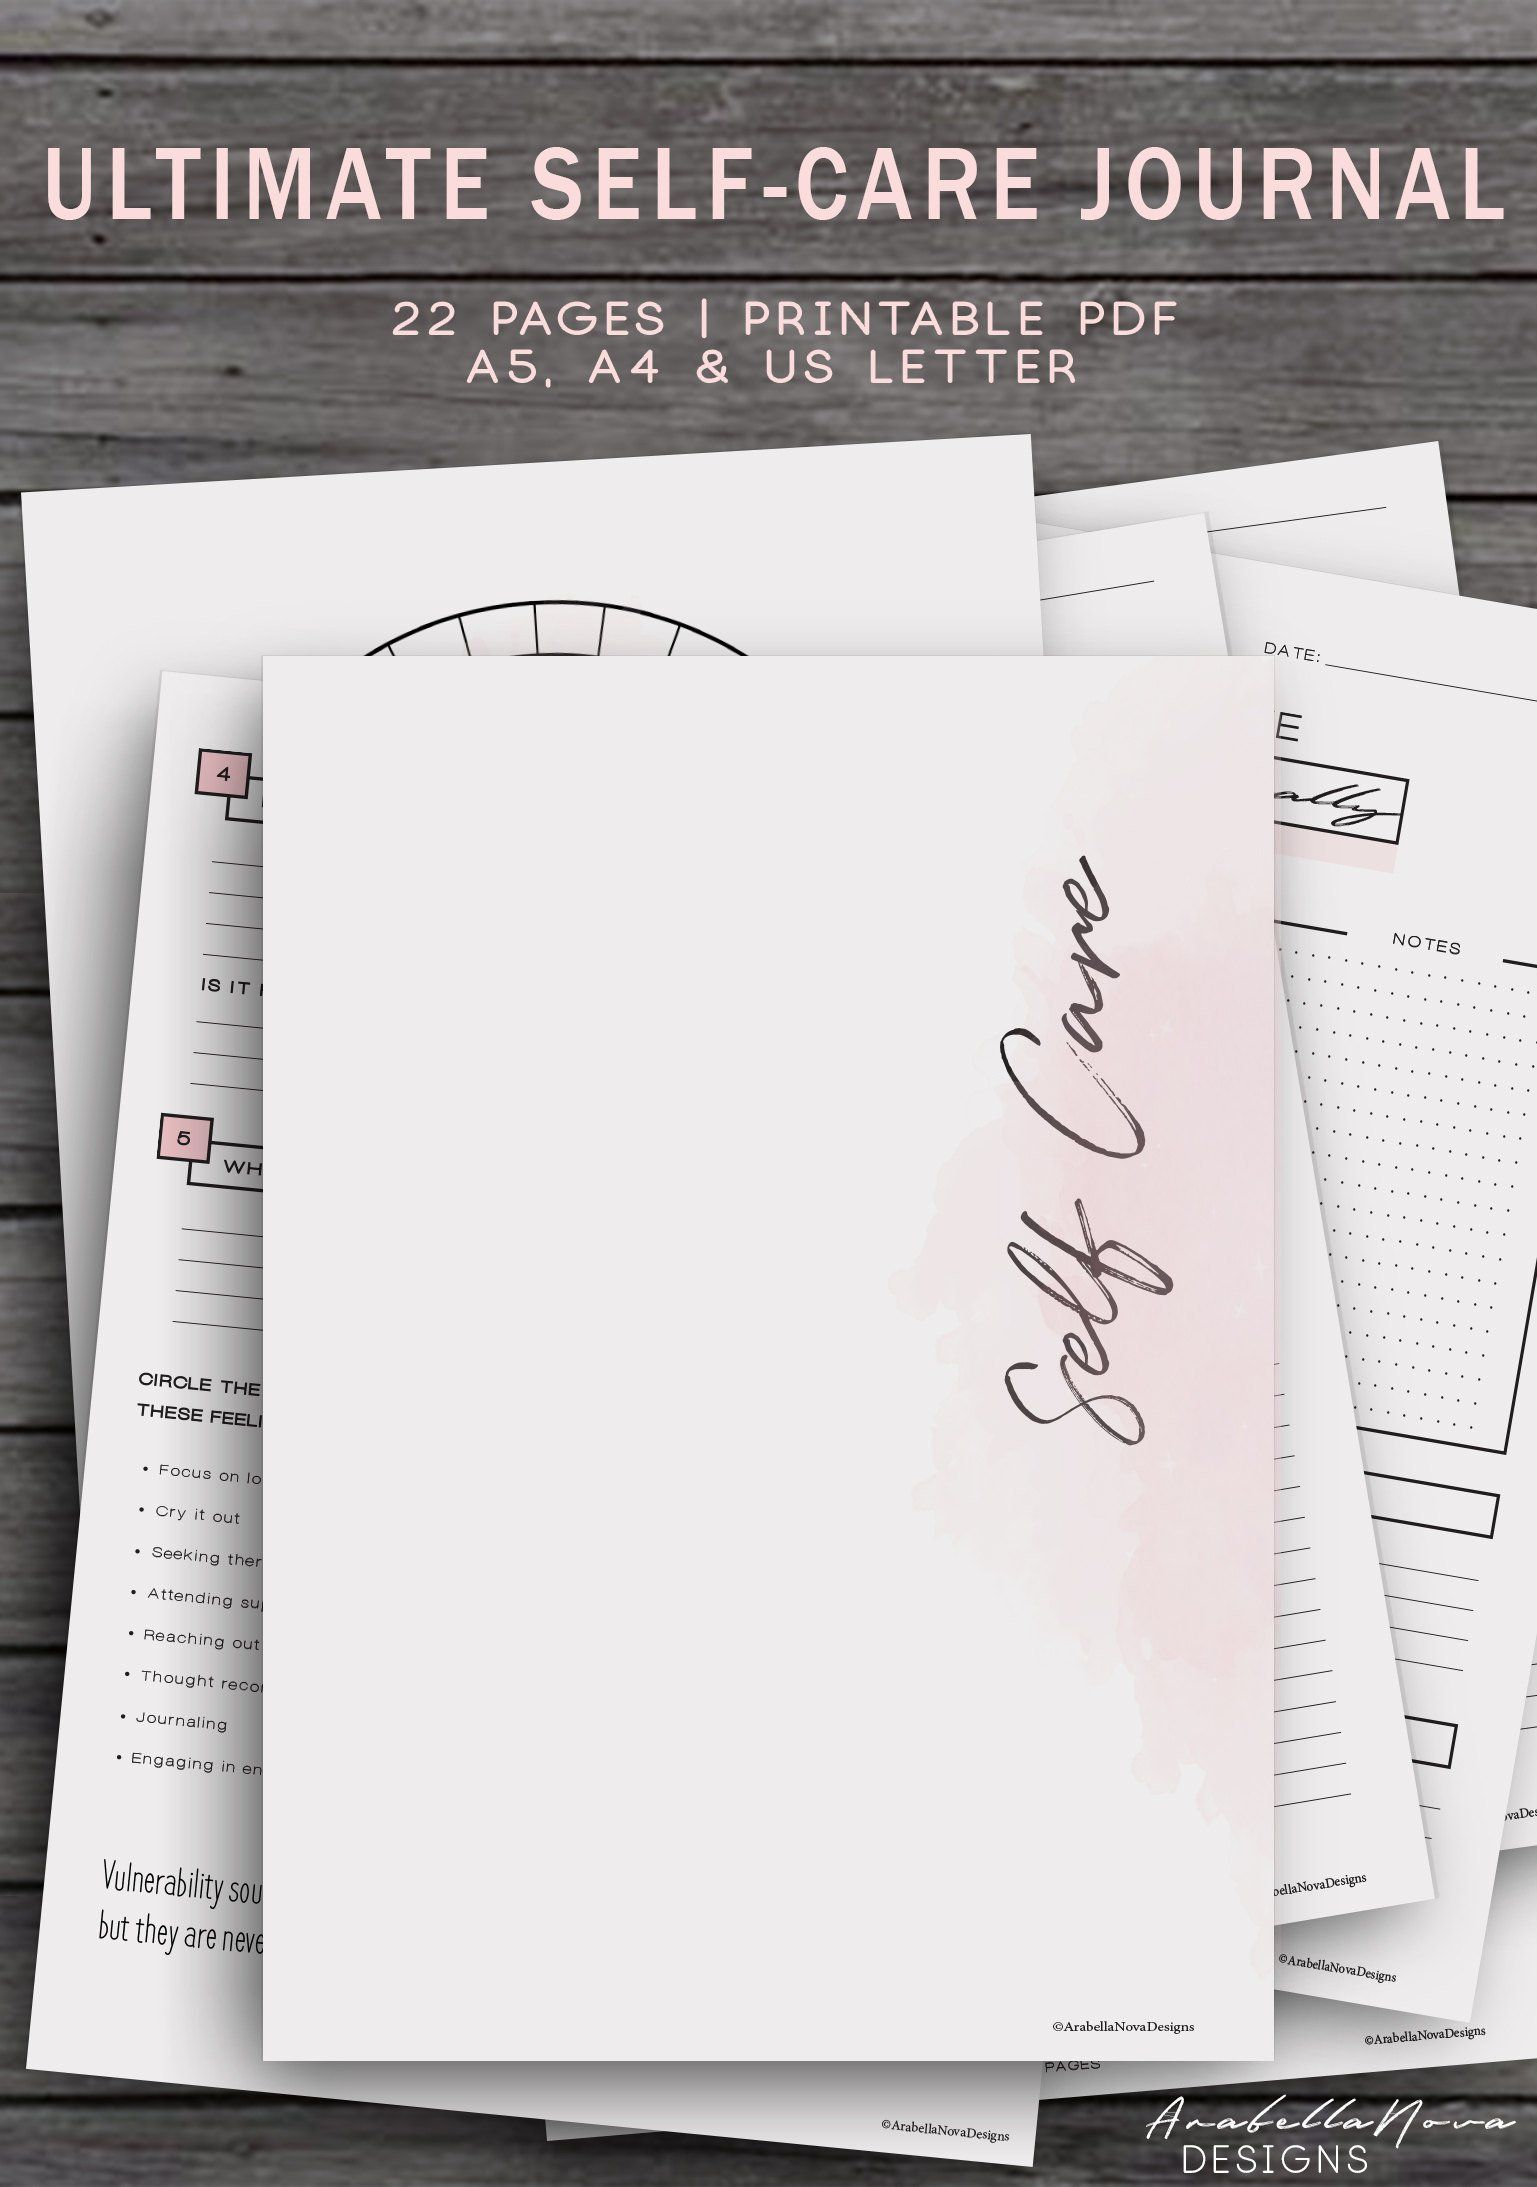 Exciting News The Self Care Journal Is Coming Updated